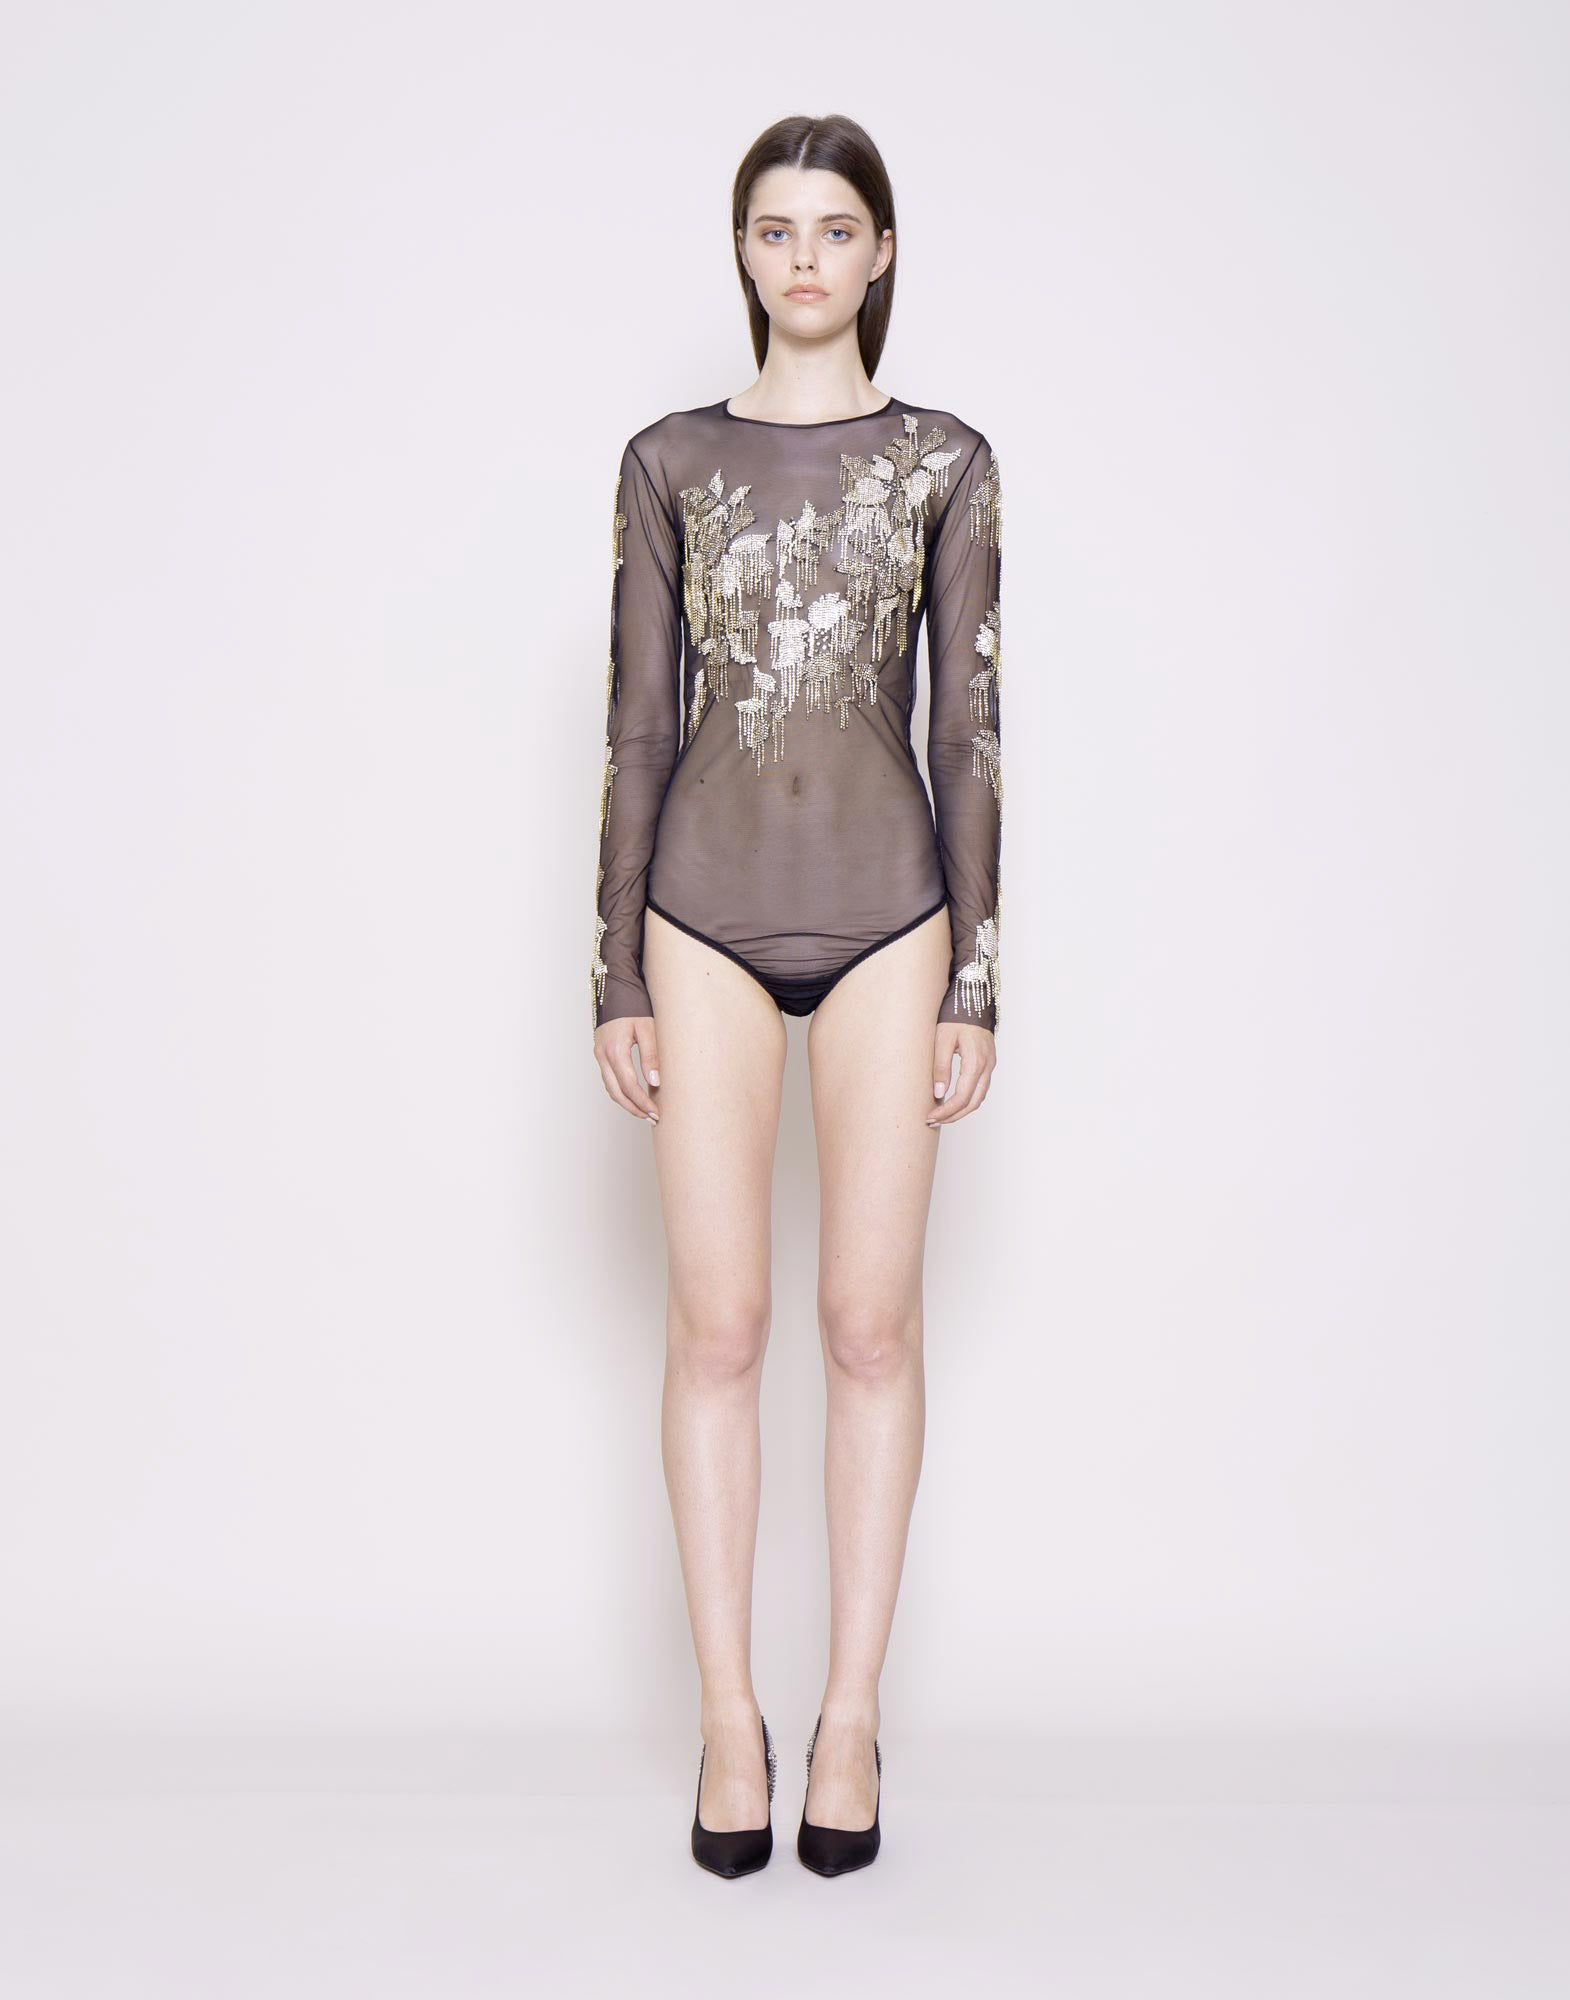 Crystal embroidered sheer bodysuit